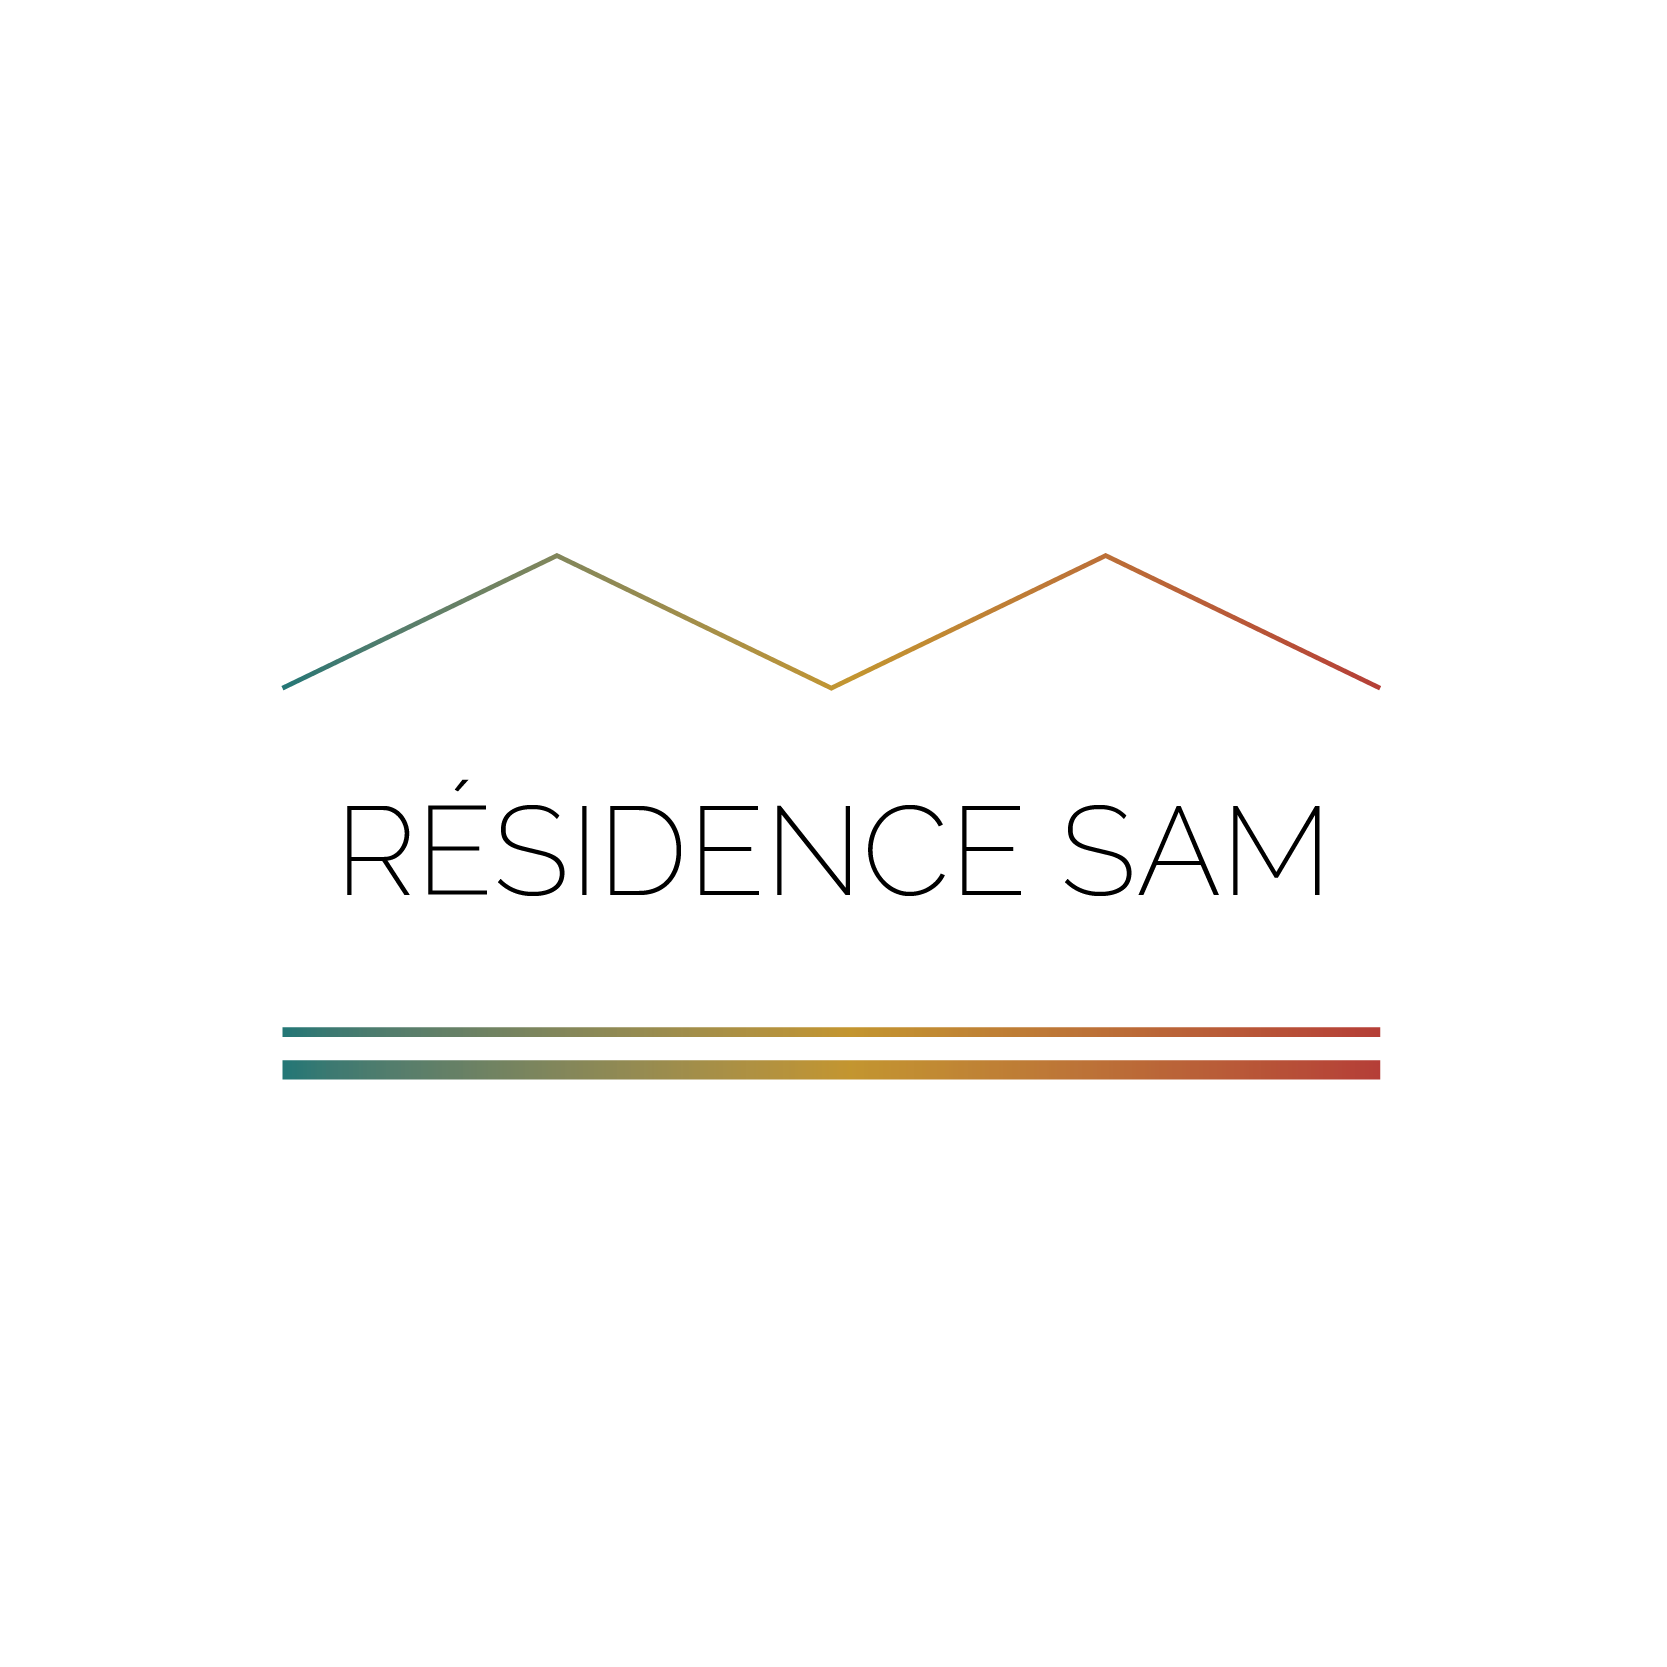 Copie de RÉSIDENTS SAM 2015